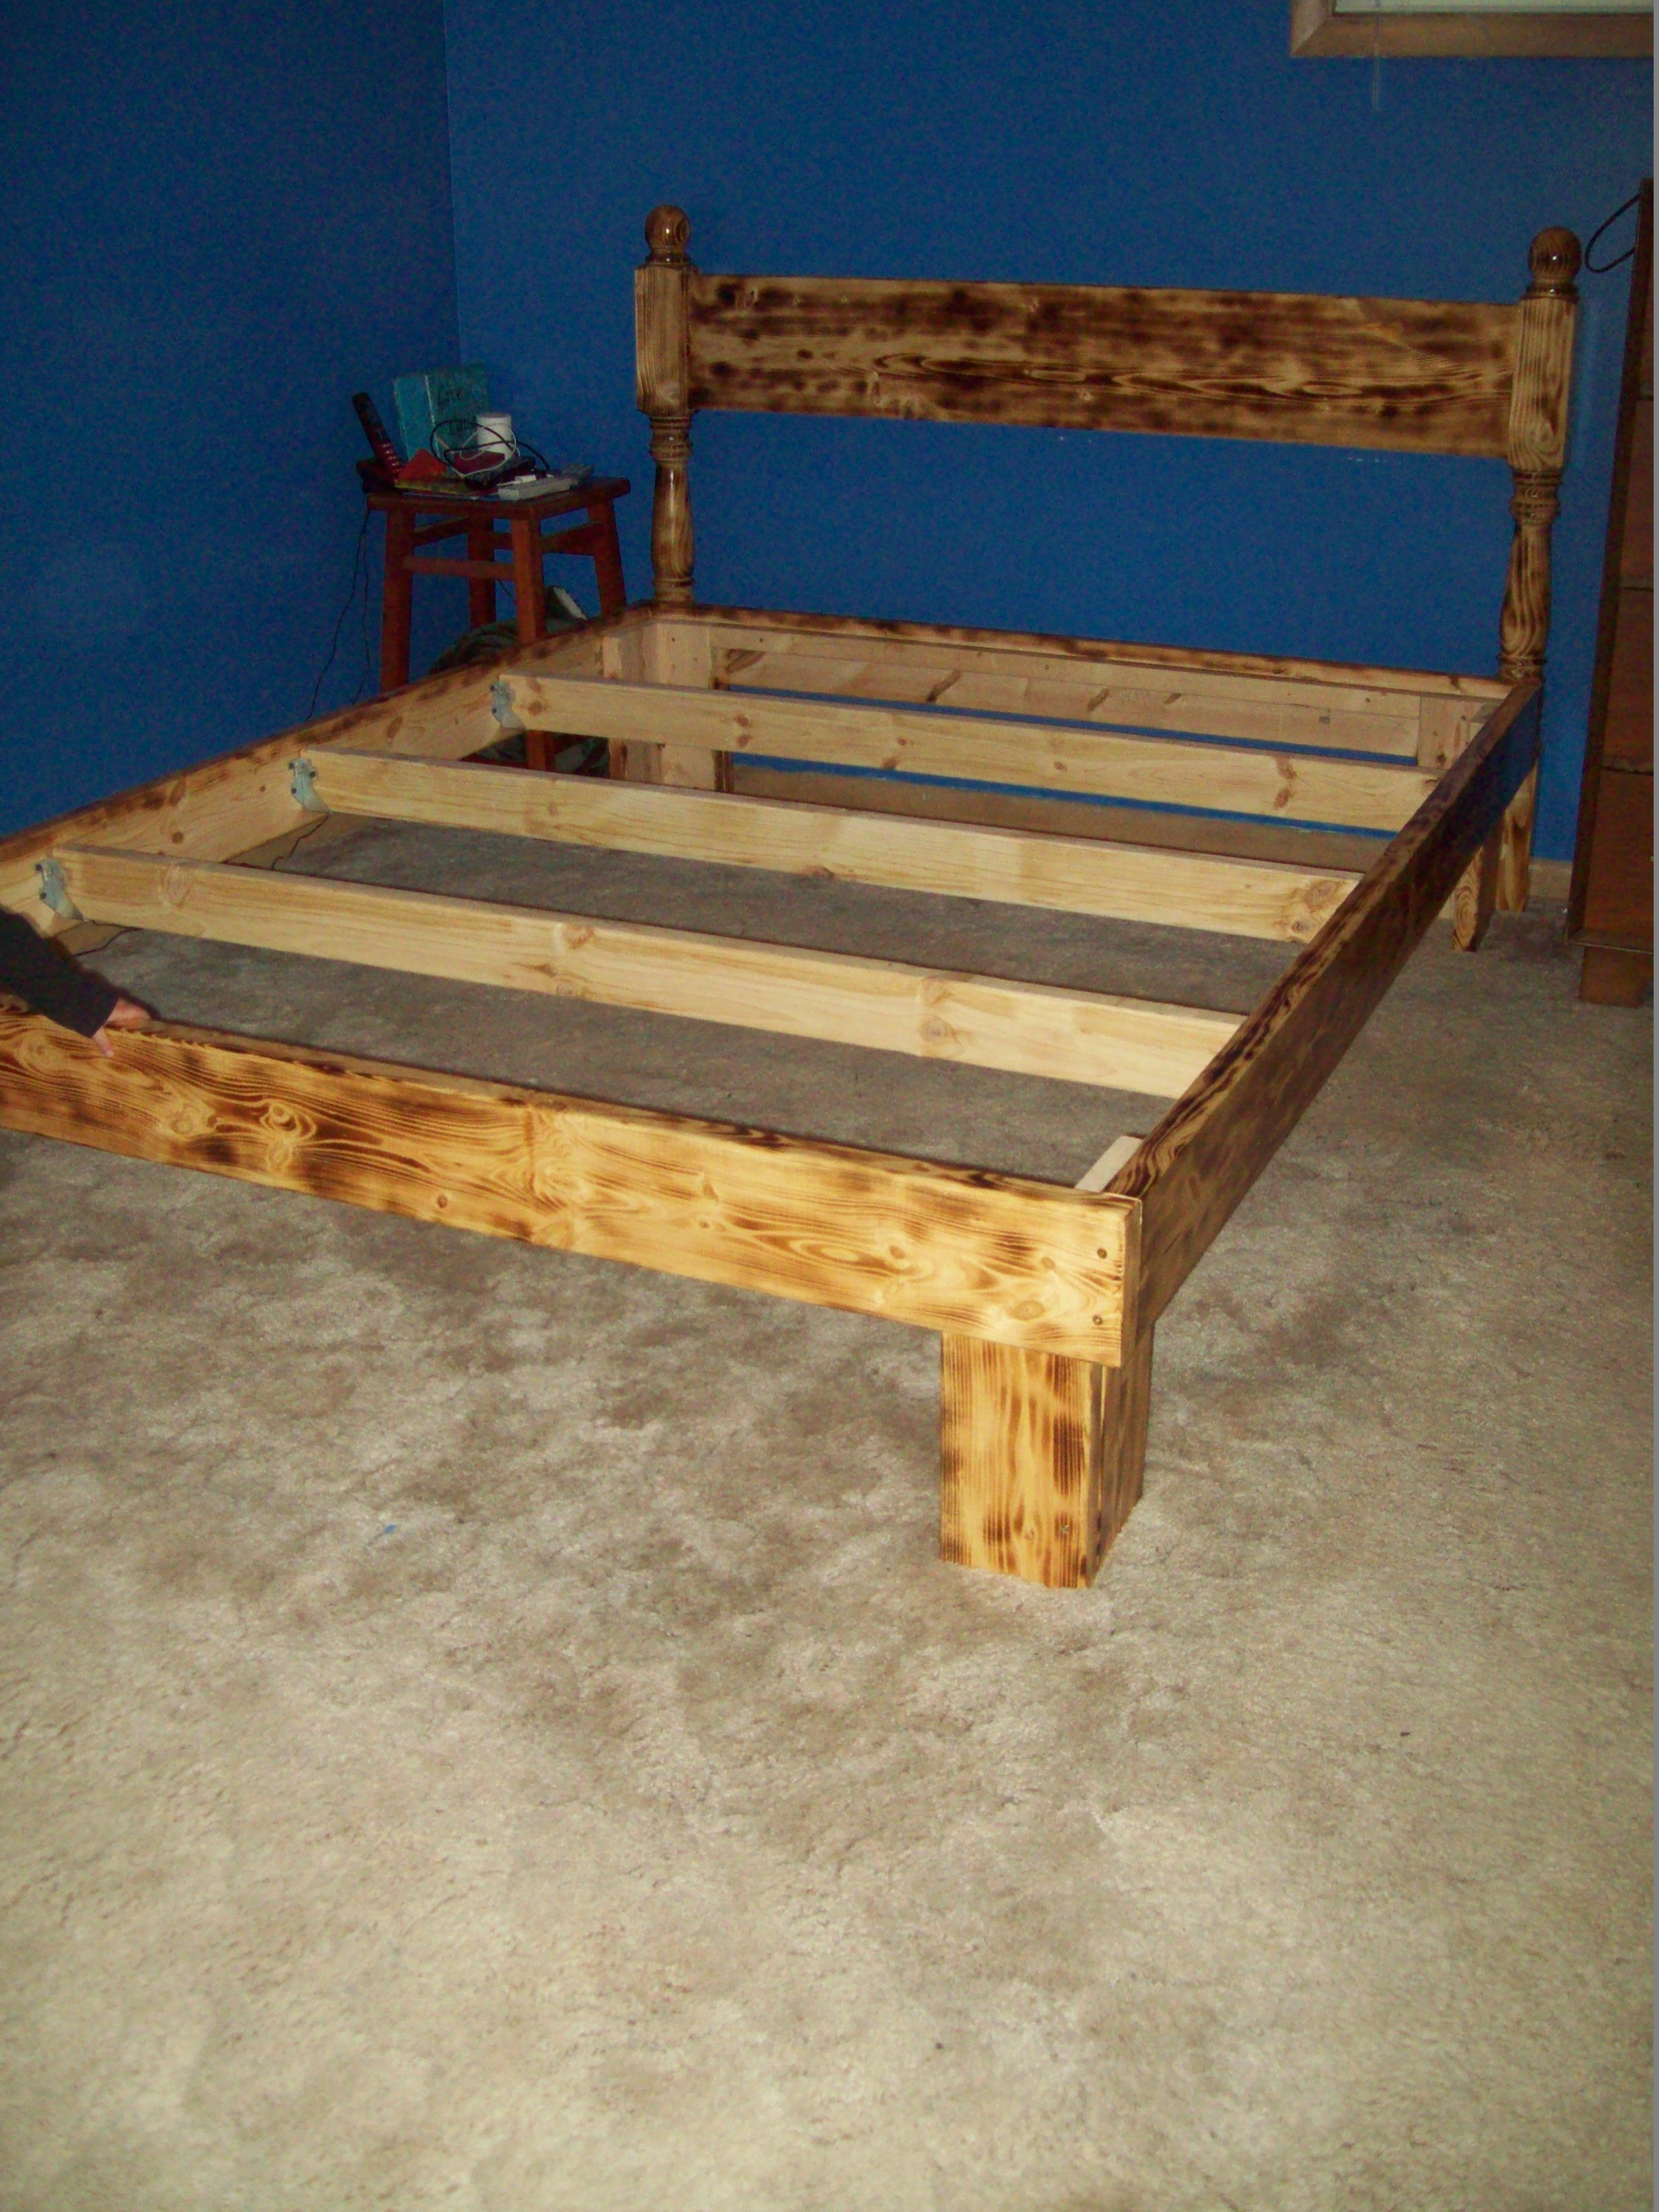 Bed Frame Made Out Of 2 X 6 Boards Burnt With A Torch And Clear